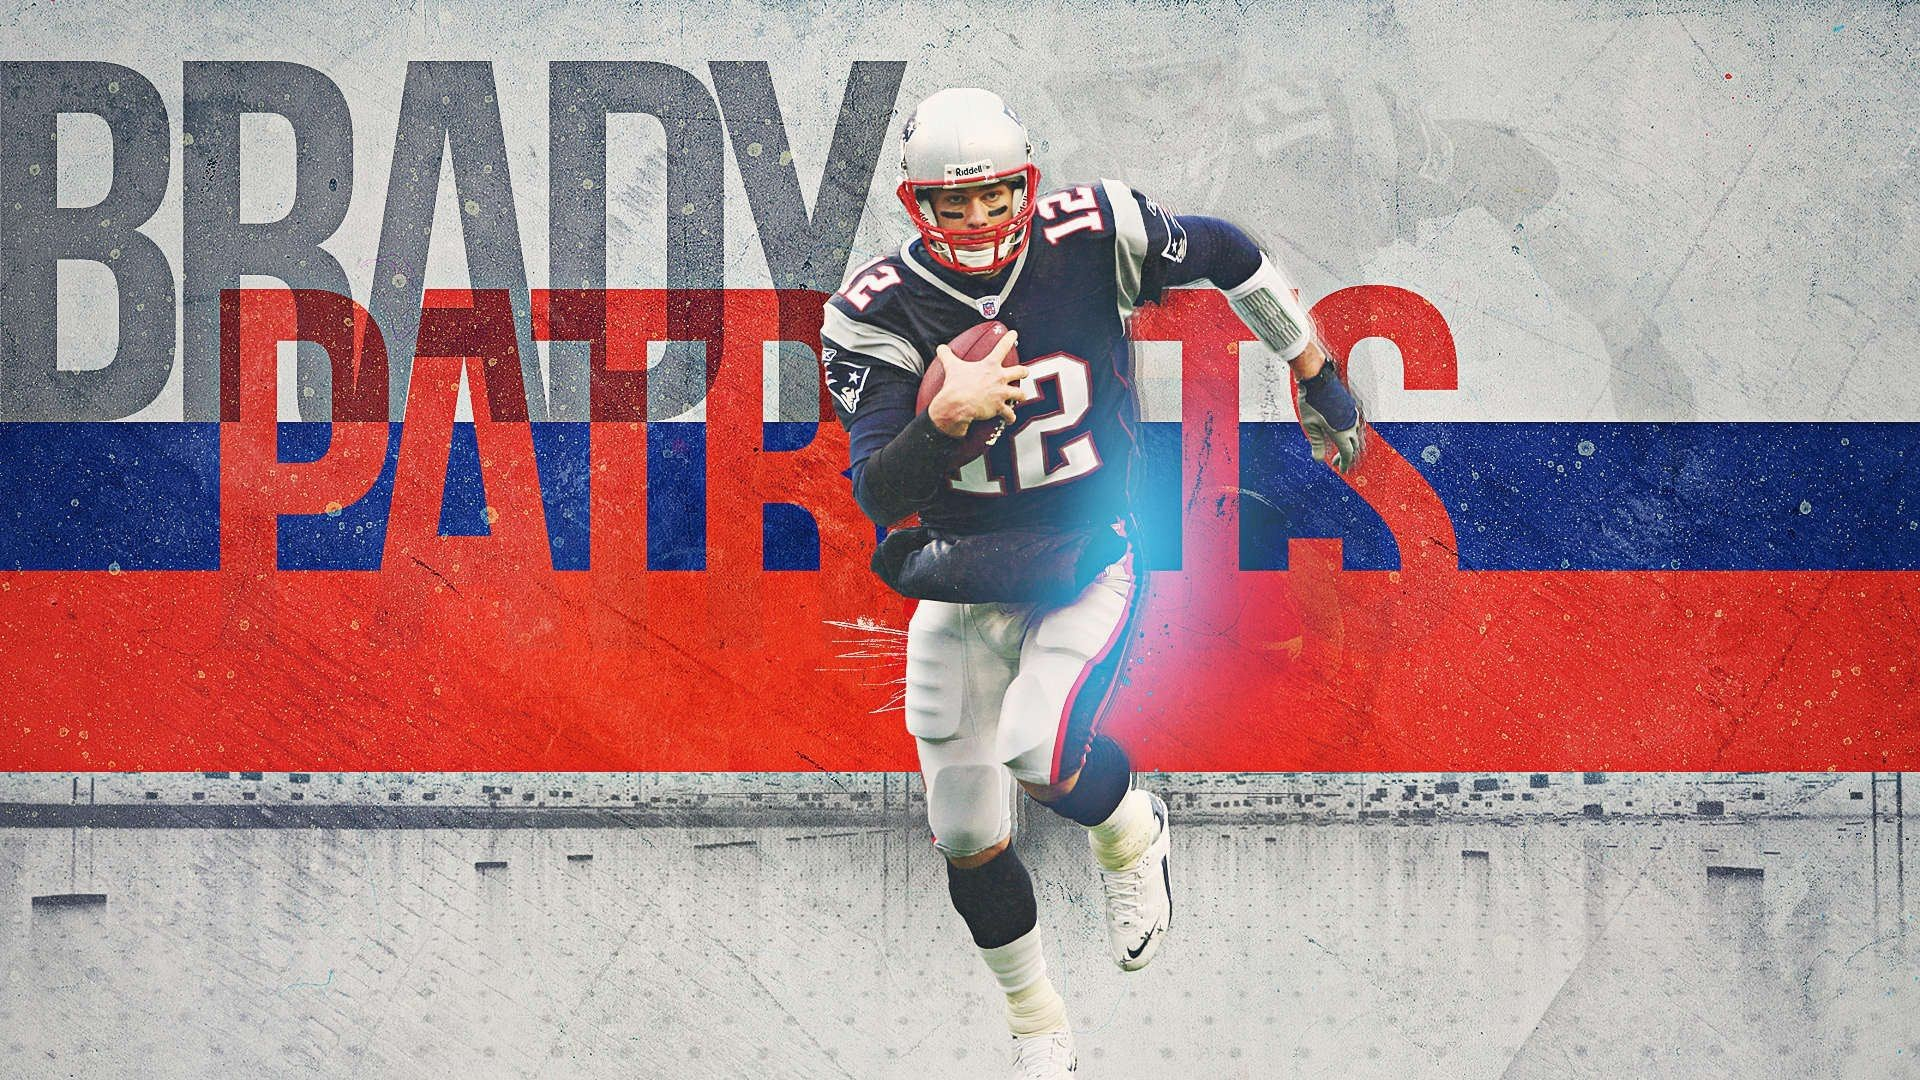 Tom Brady Wallpaper ·① Download Free HD Wallpapers For